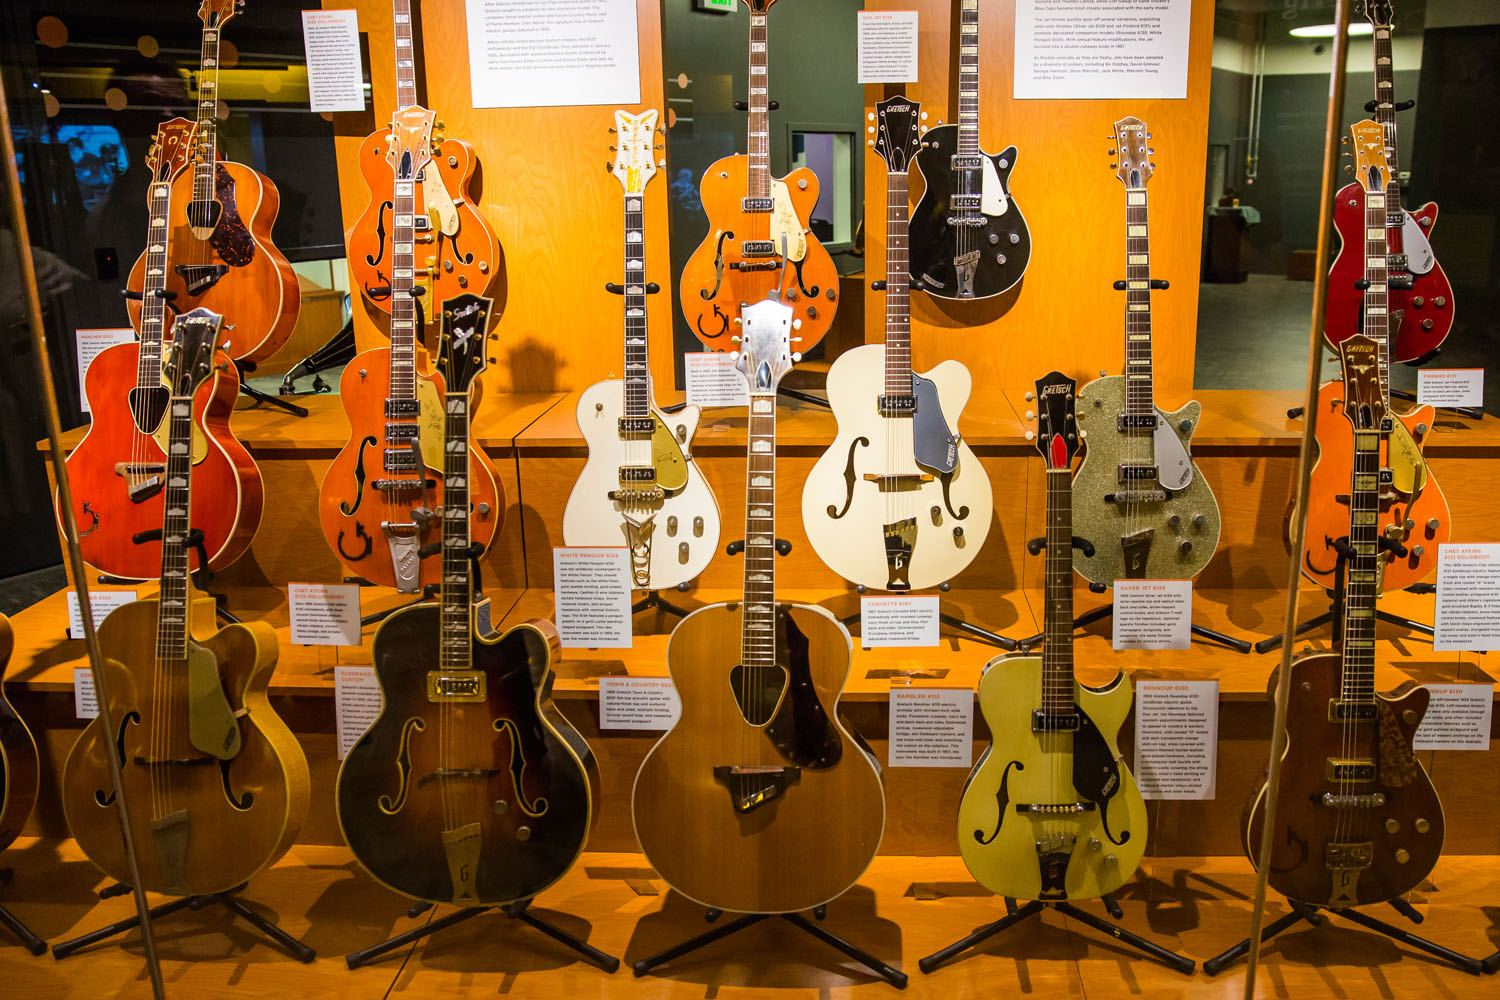 Guitars Country Music Hall of Fame